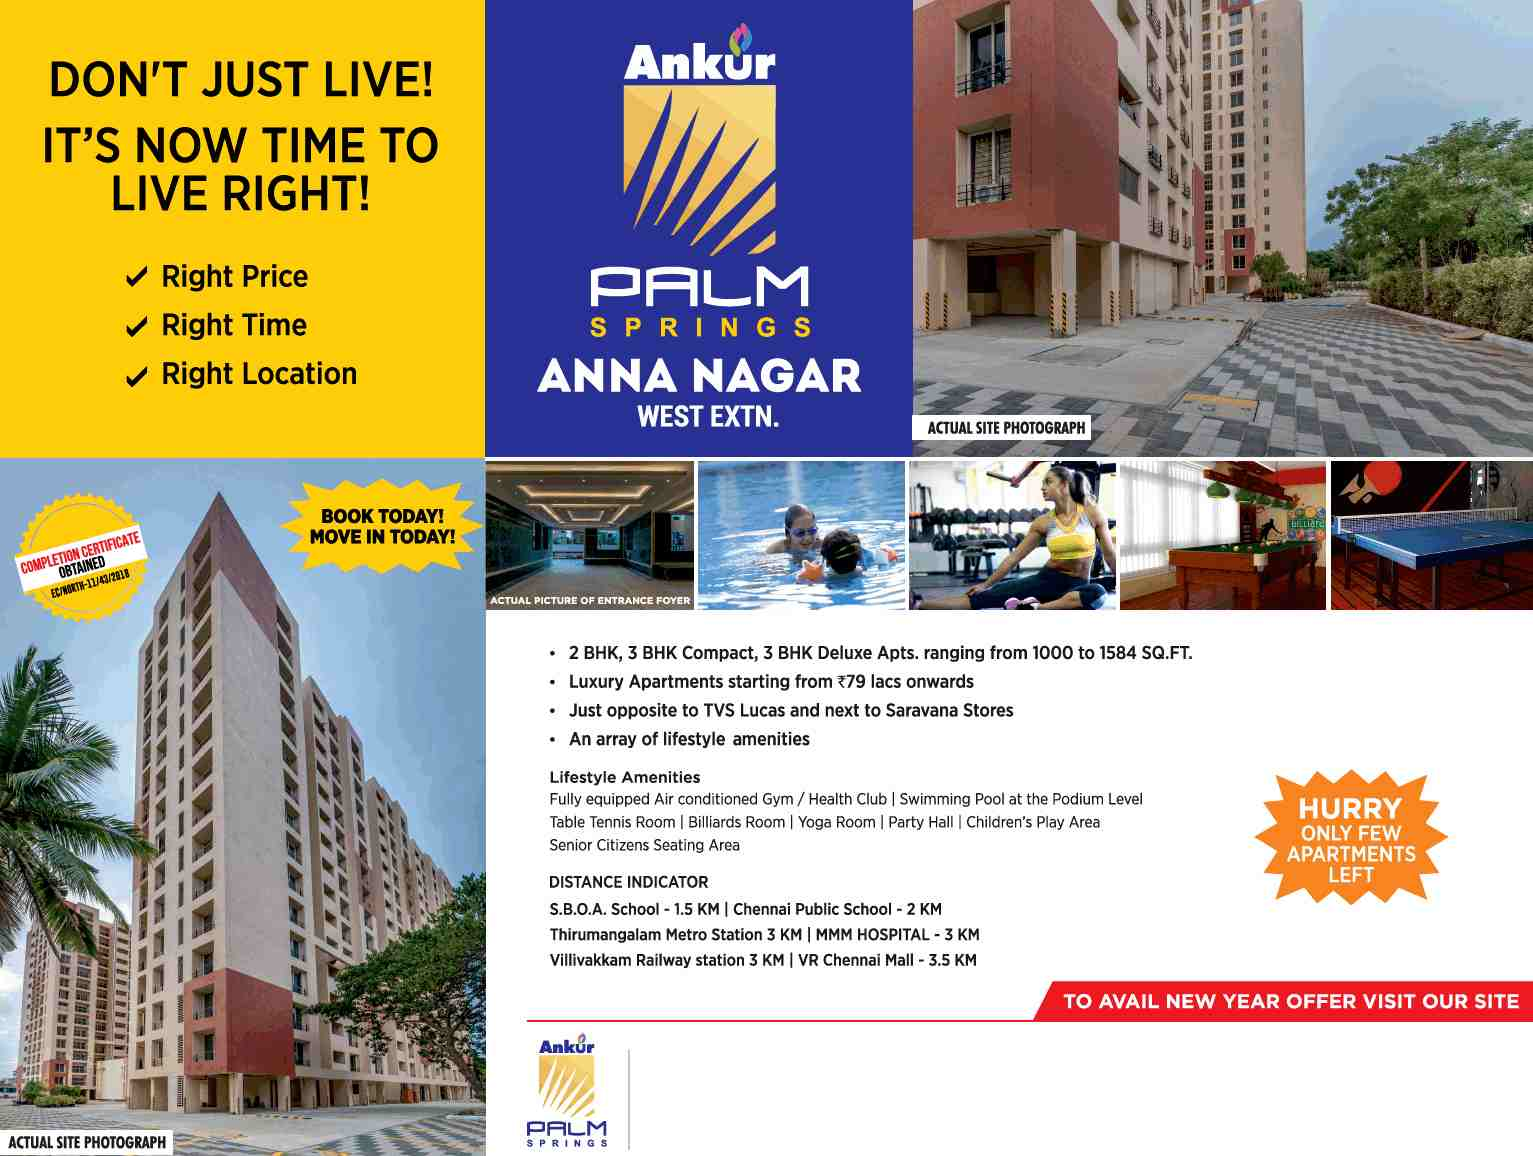 Completion certificate obtained for Ankur Palm Springs in Chennai